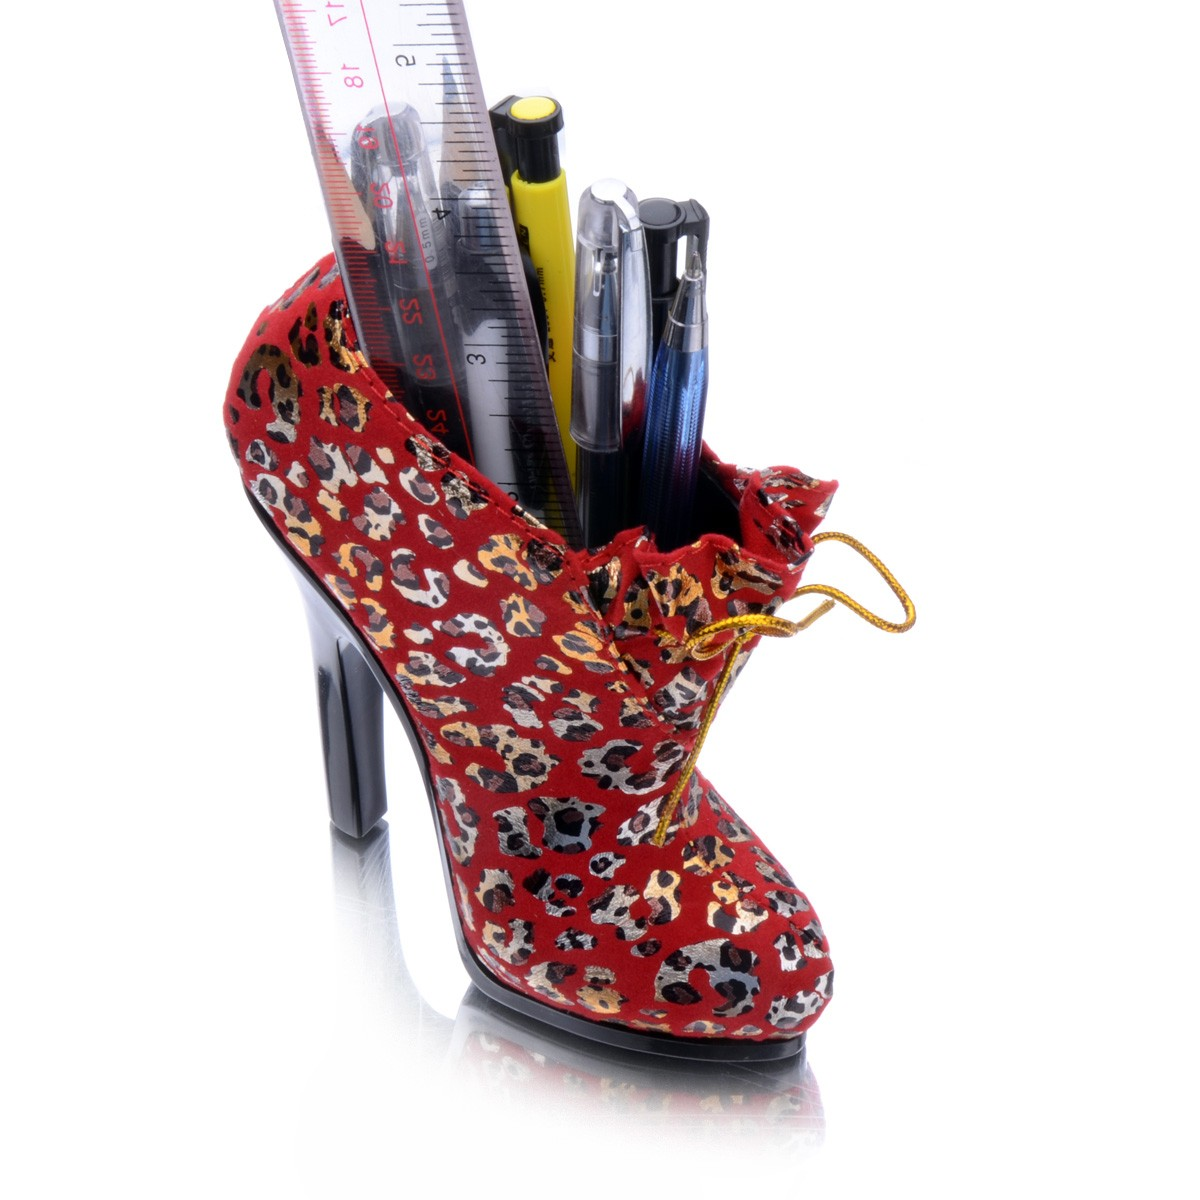 Shoe style desk tidy / Promotional product fully customized  to your requirement UK Supplier